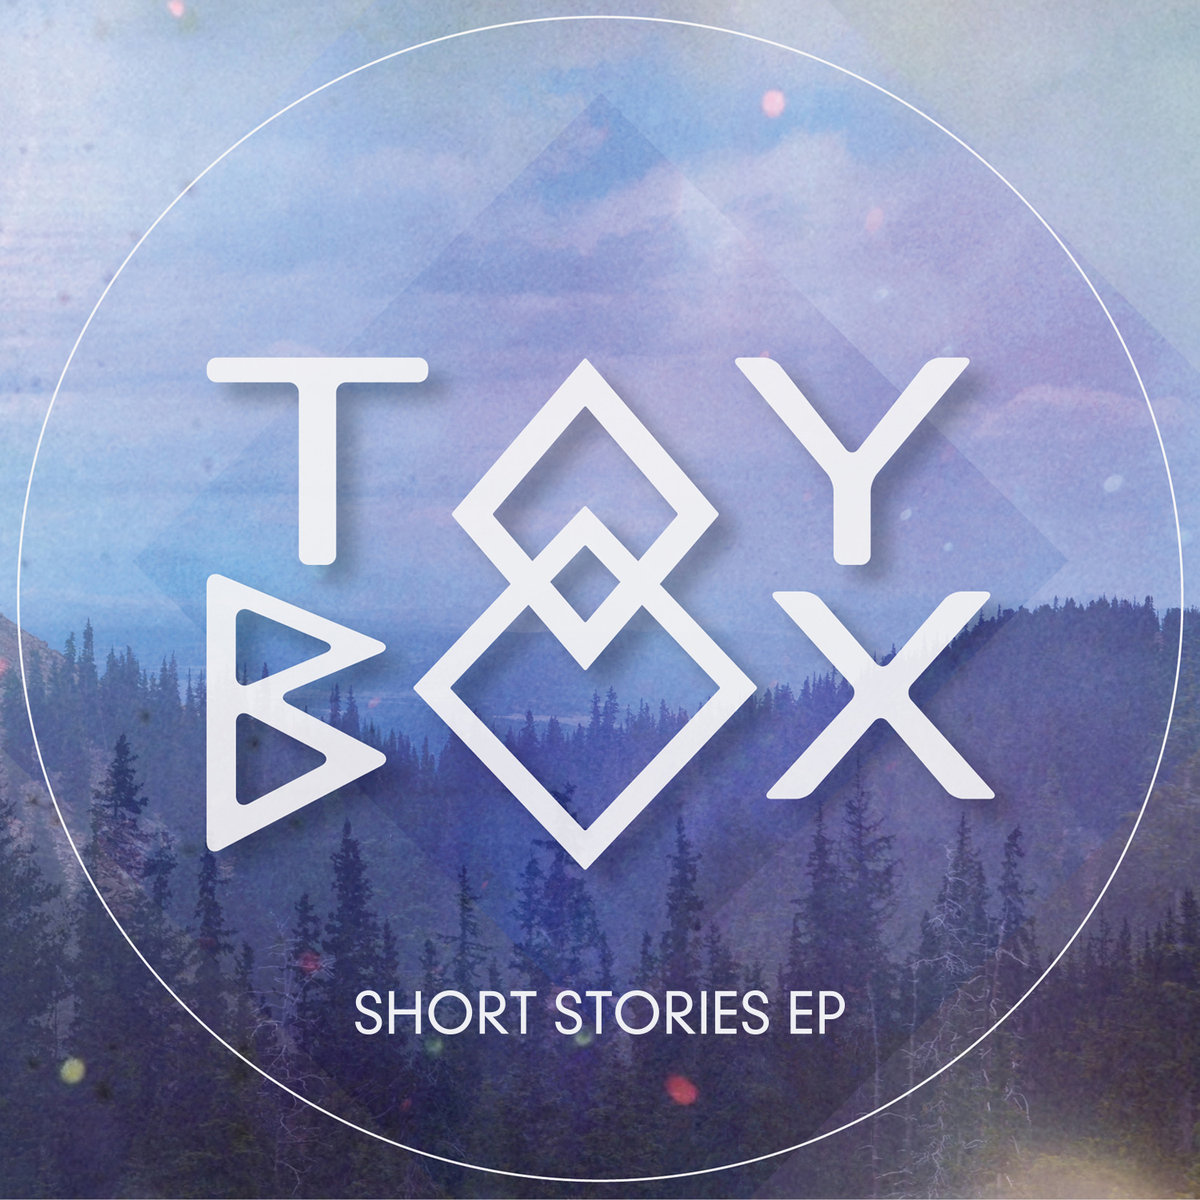 Toy Box - Halo @ 'Short Stories' album (alternative, bass)